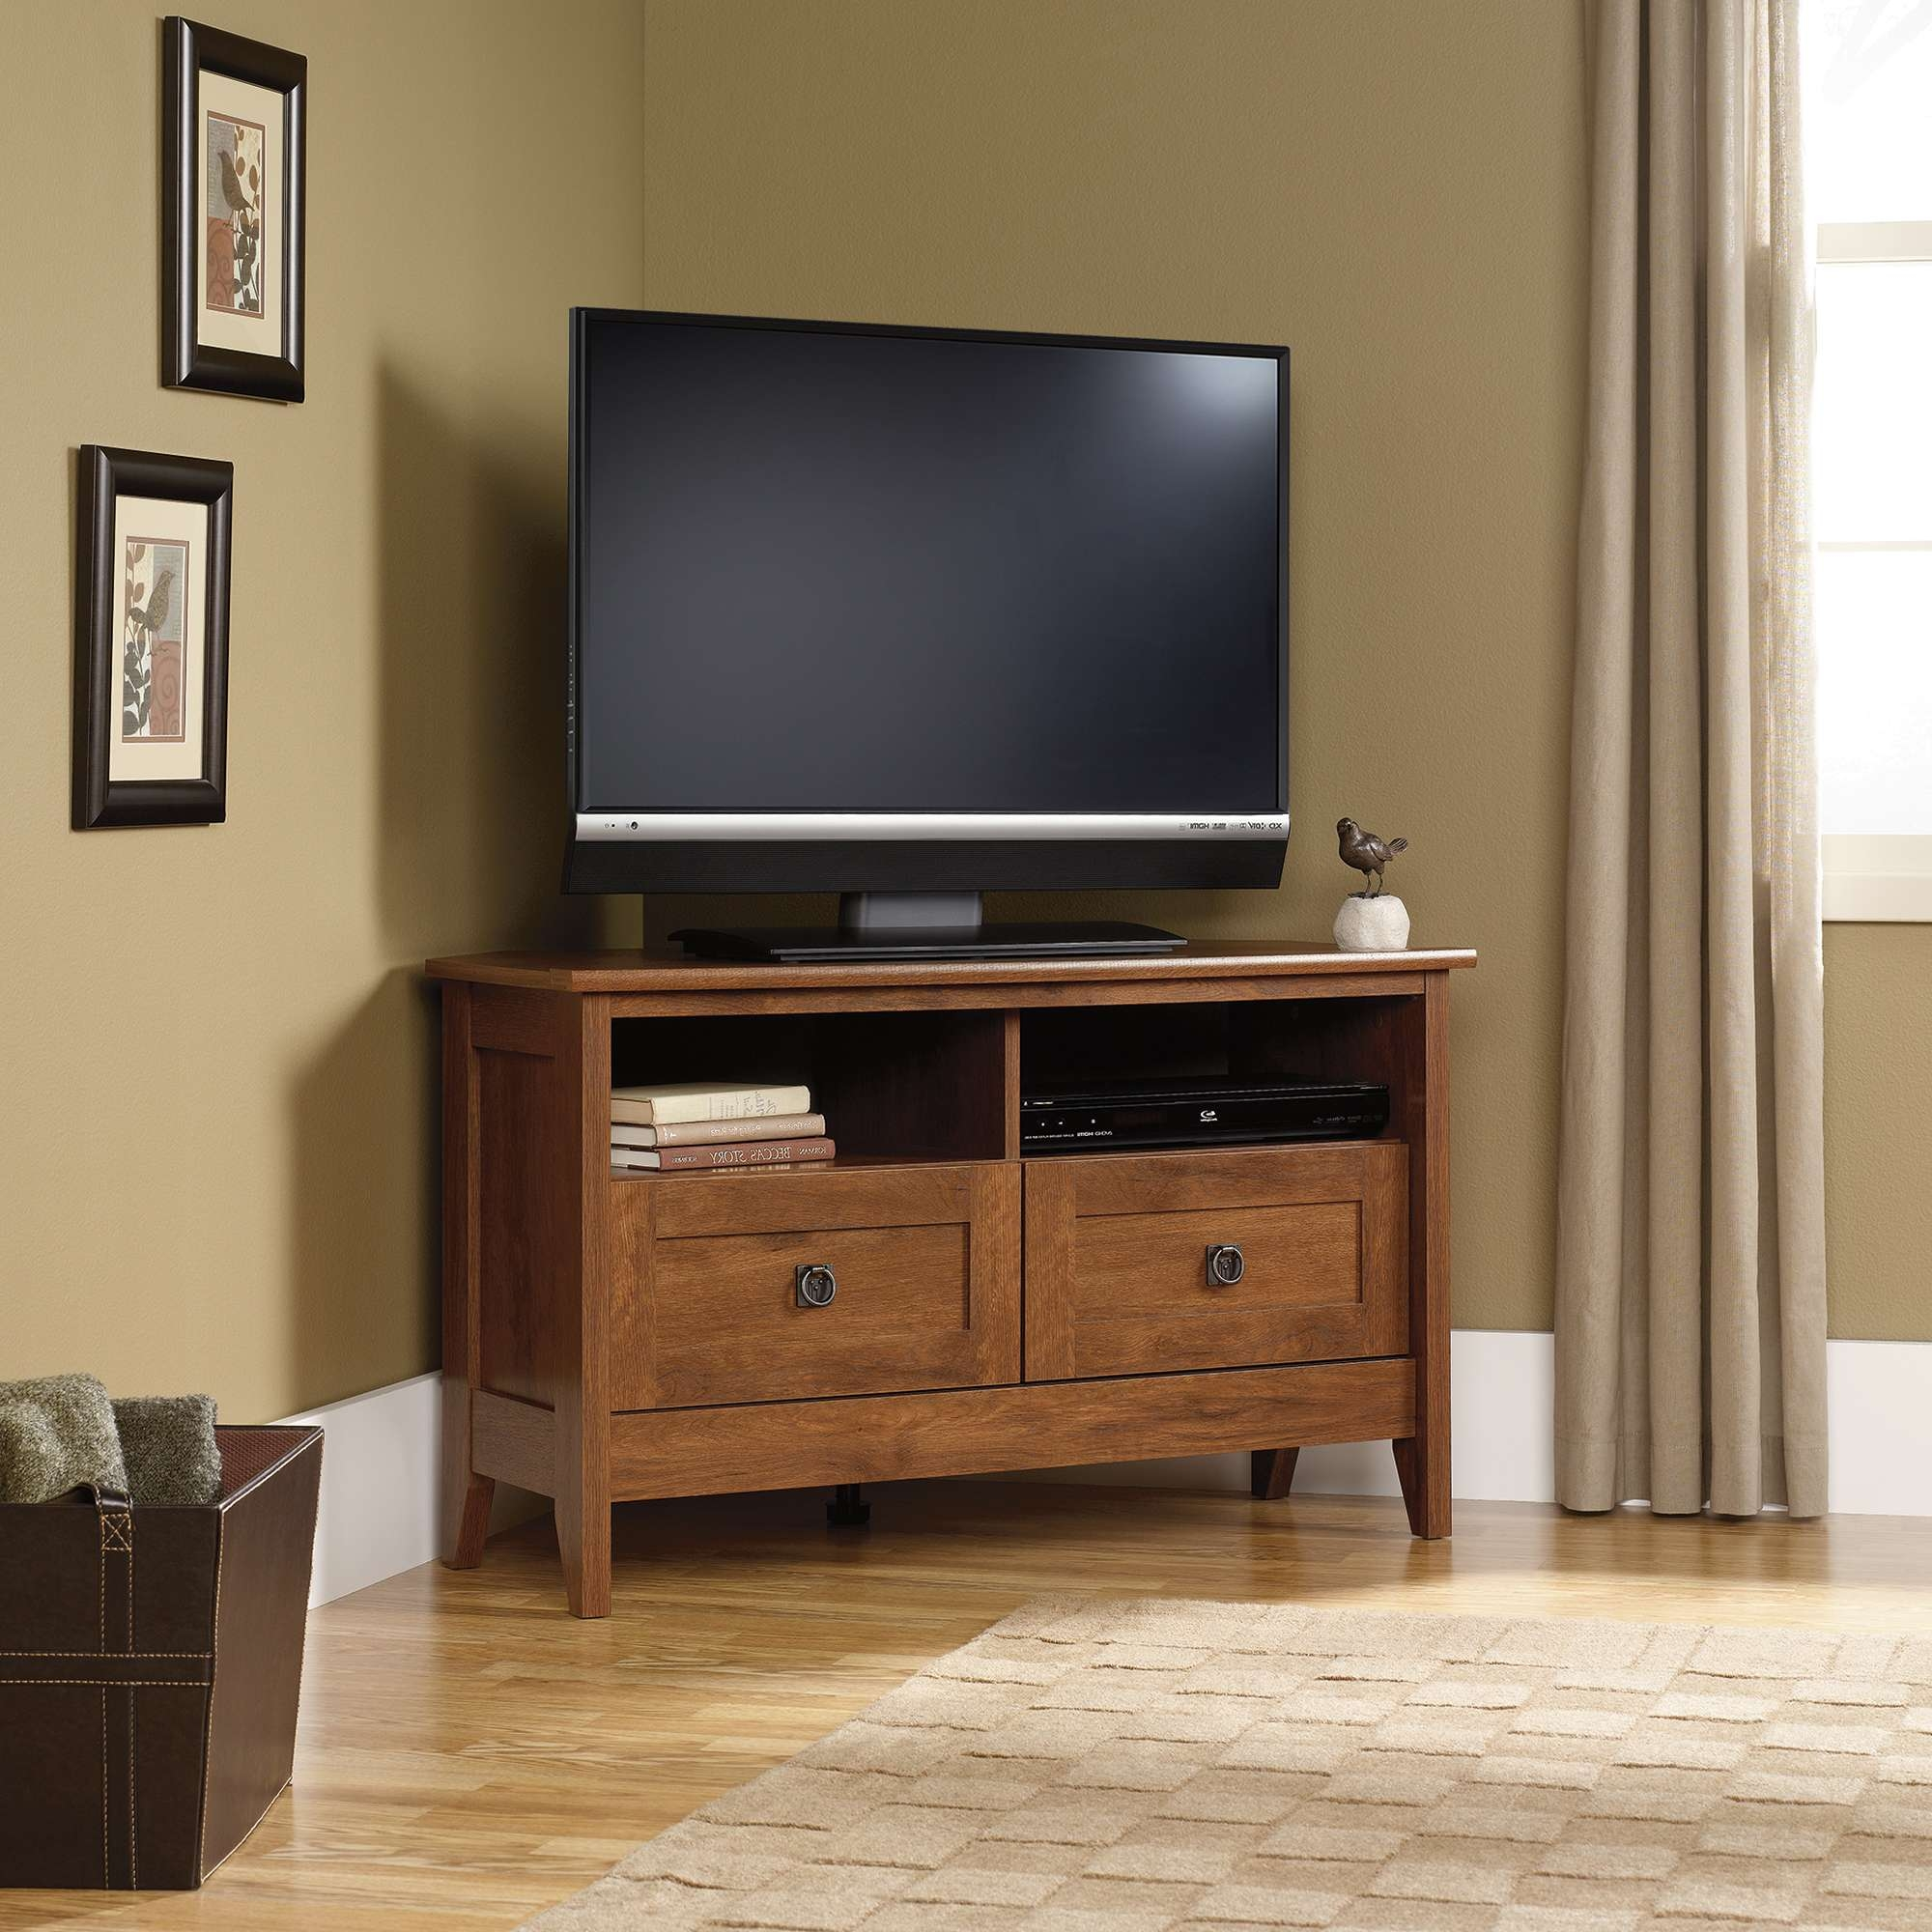 Sauder Select | Corner Tv Stand | 410627 | Sauder Regarding Corner Tv Stands With Drawers (View 4 of 15)